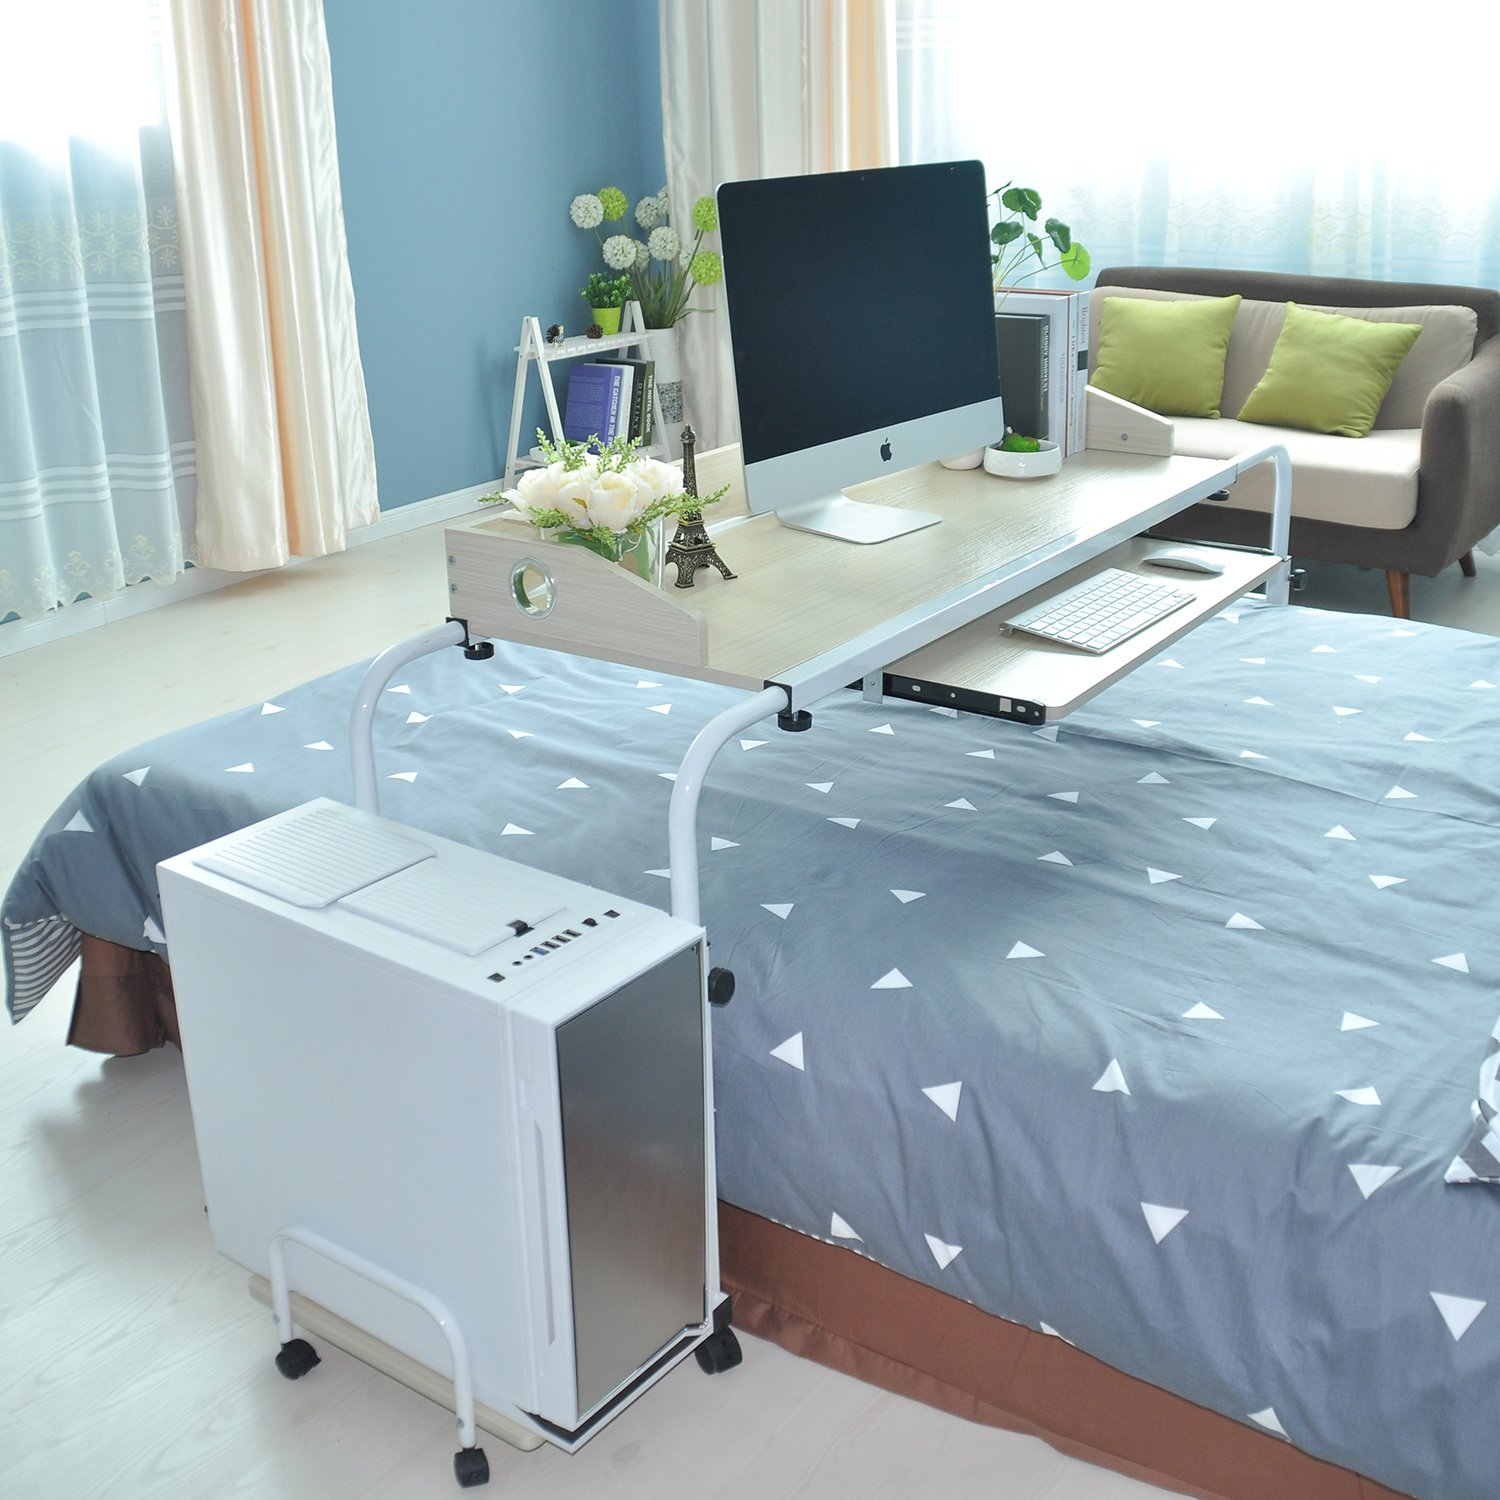 Overbed Table 55.12'' Laptop Cart Adjustable Overbed Computer Table Desk with wheels - 1.4m Over Bed Table Tray for Eating and Working on Bed Beige Nursing Table Hospital and Home Use